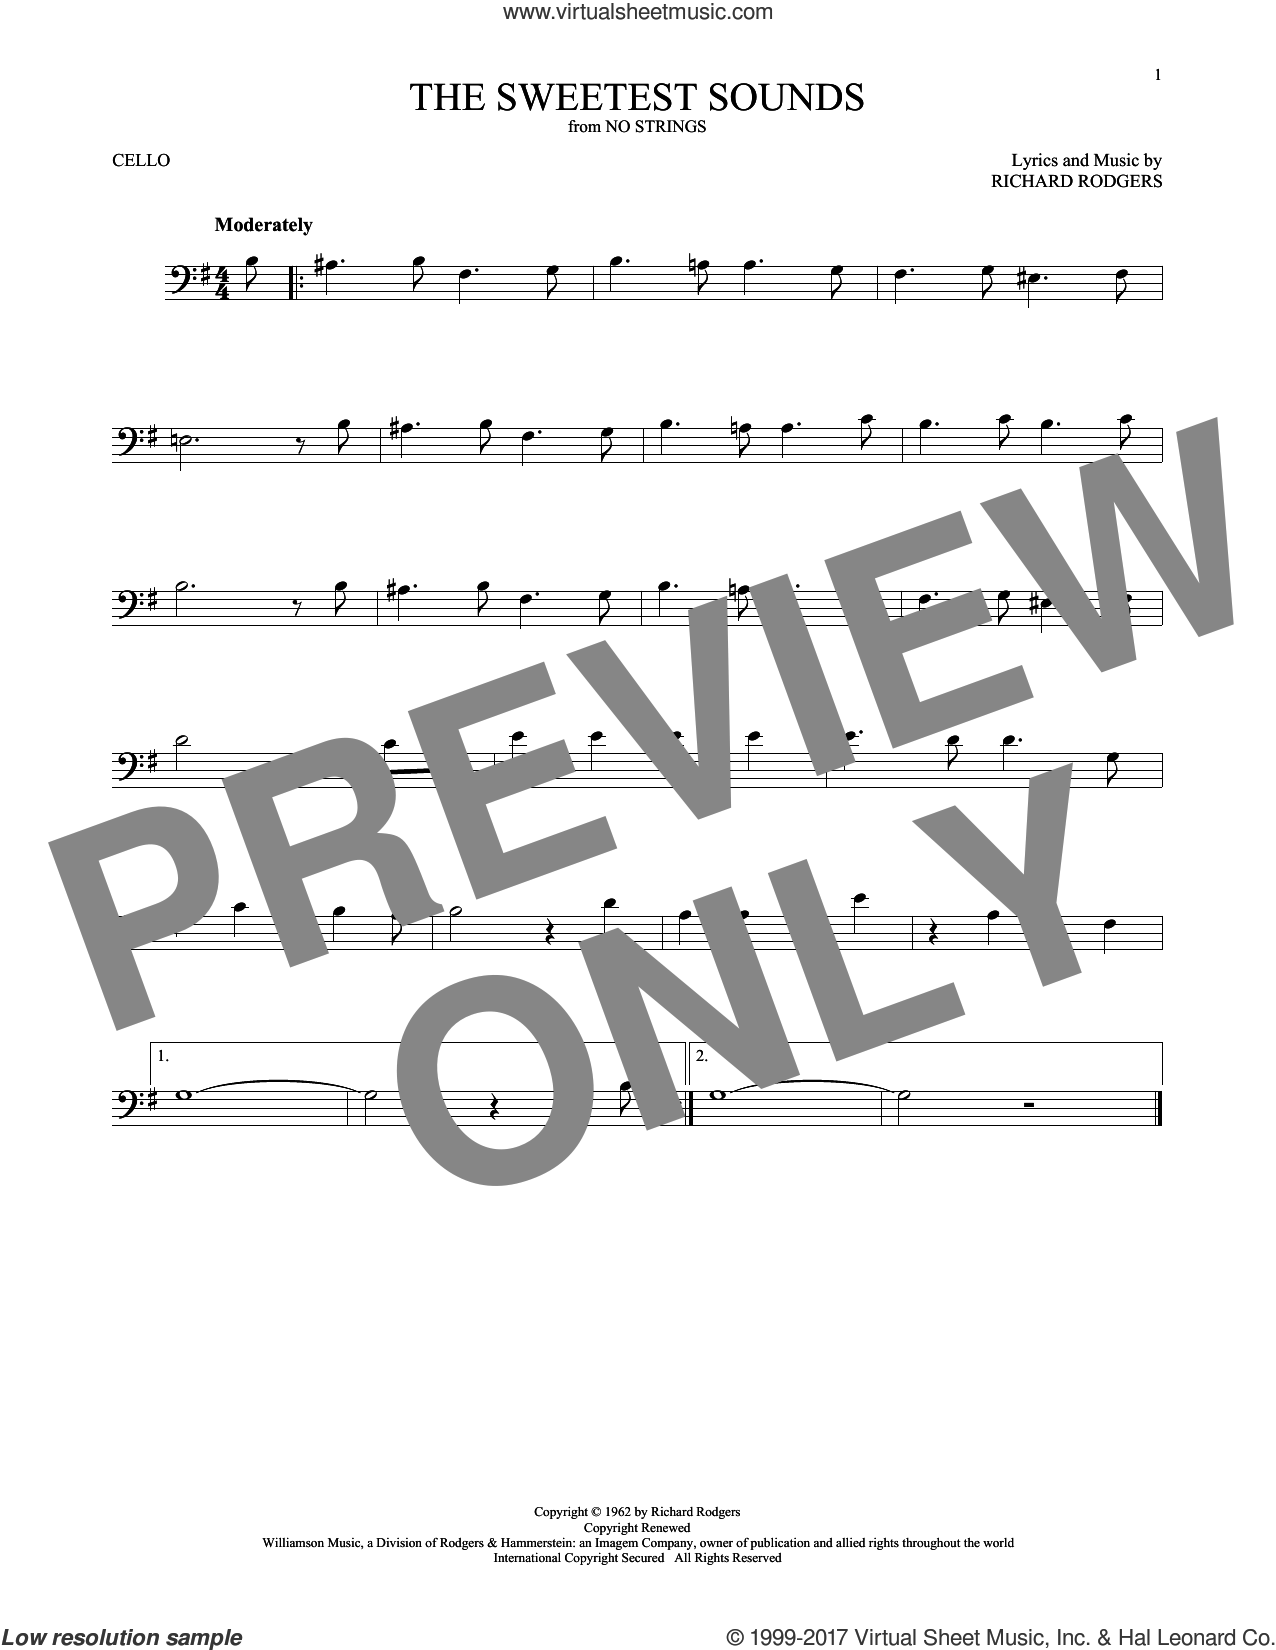 The Sweetest Sounds sheet music for cello solo by Richard Rodgers, intermediate skill level